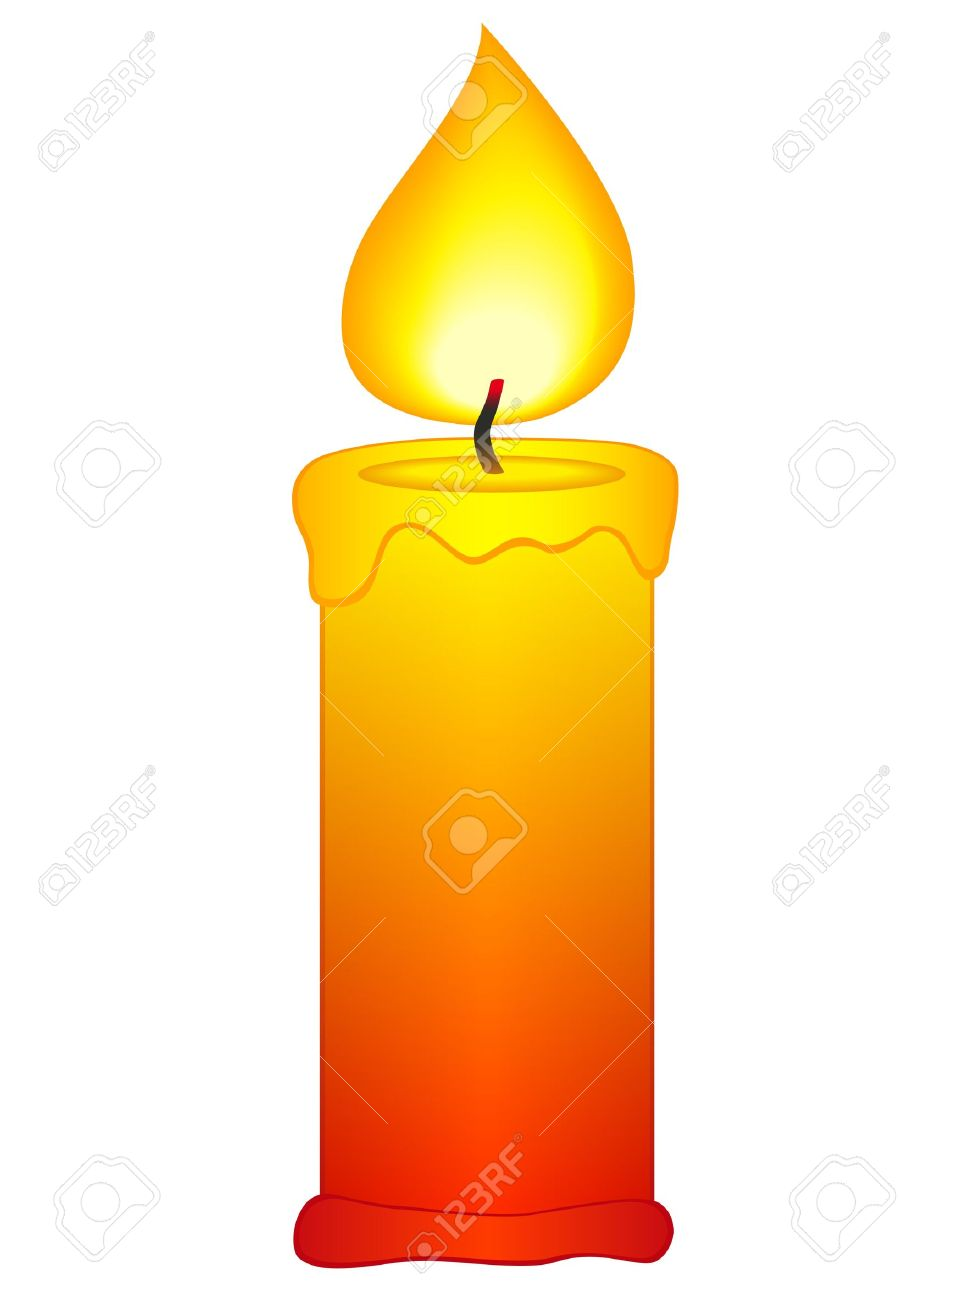 beauty lighted clip. Candles clipart candle flame